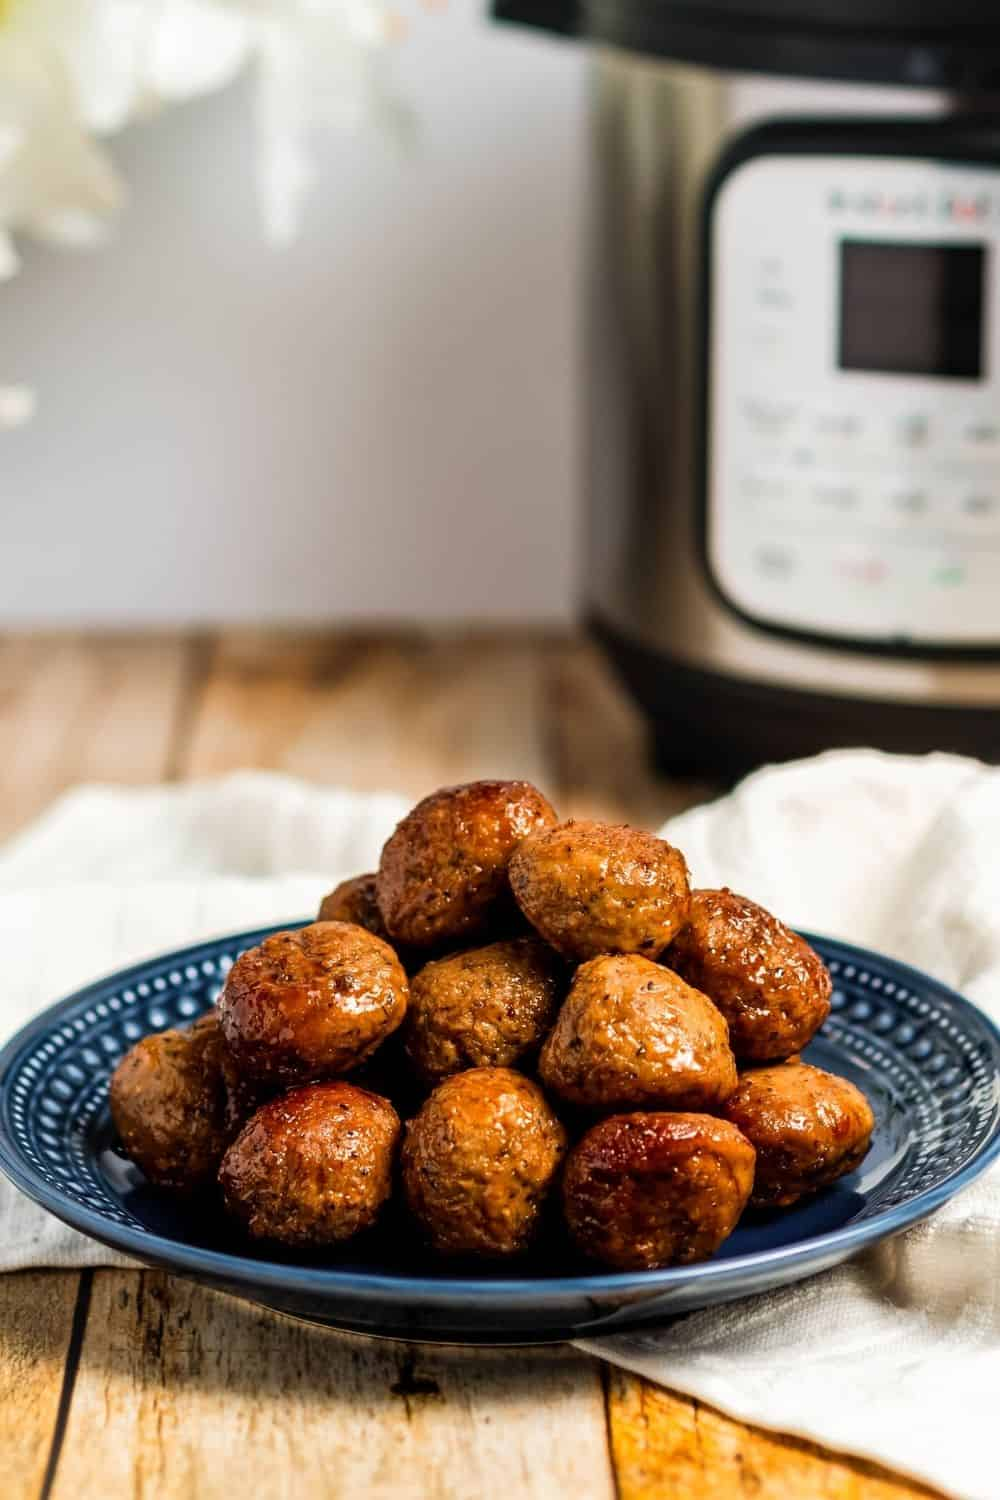 Side view of Instant Pot cocktail meatballs on a blue plate in front of an Instant Pot pressure cooker